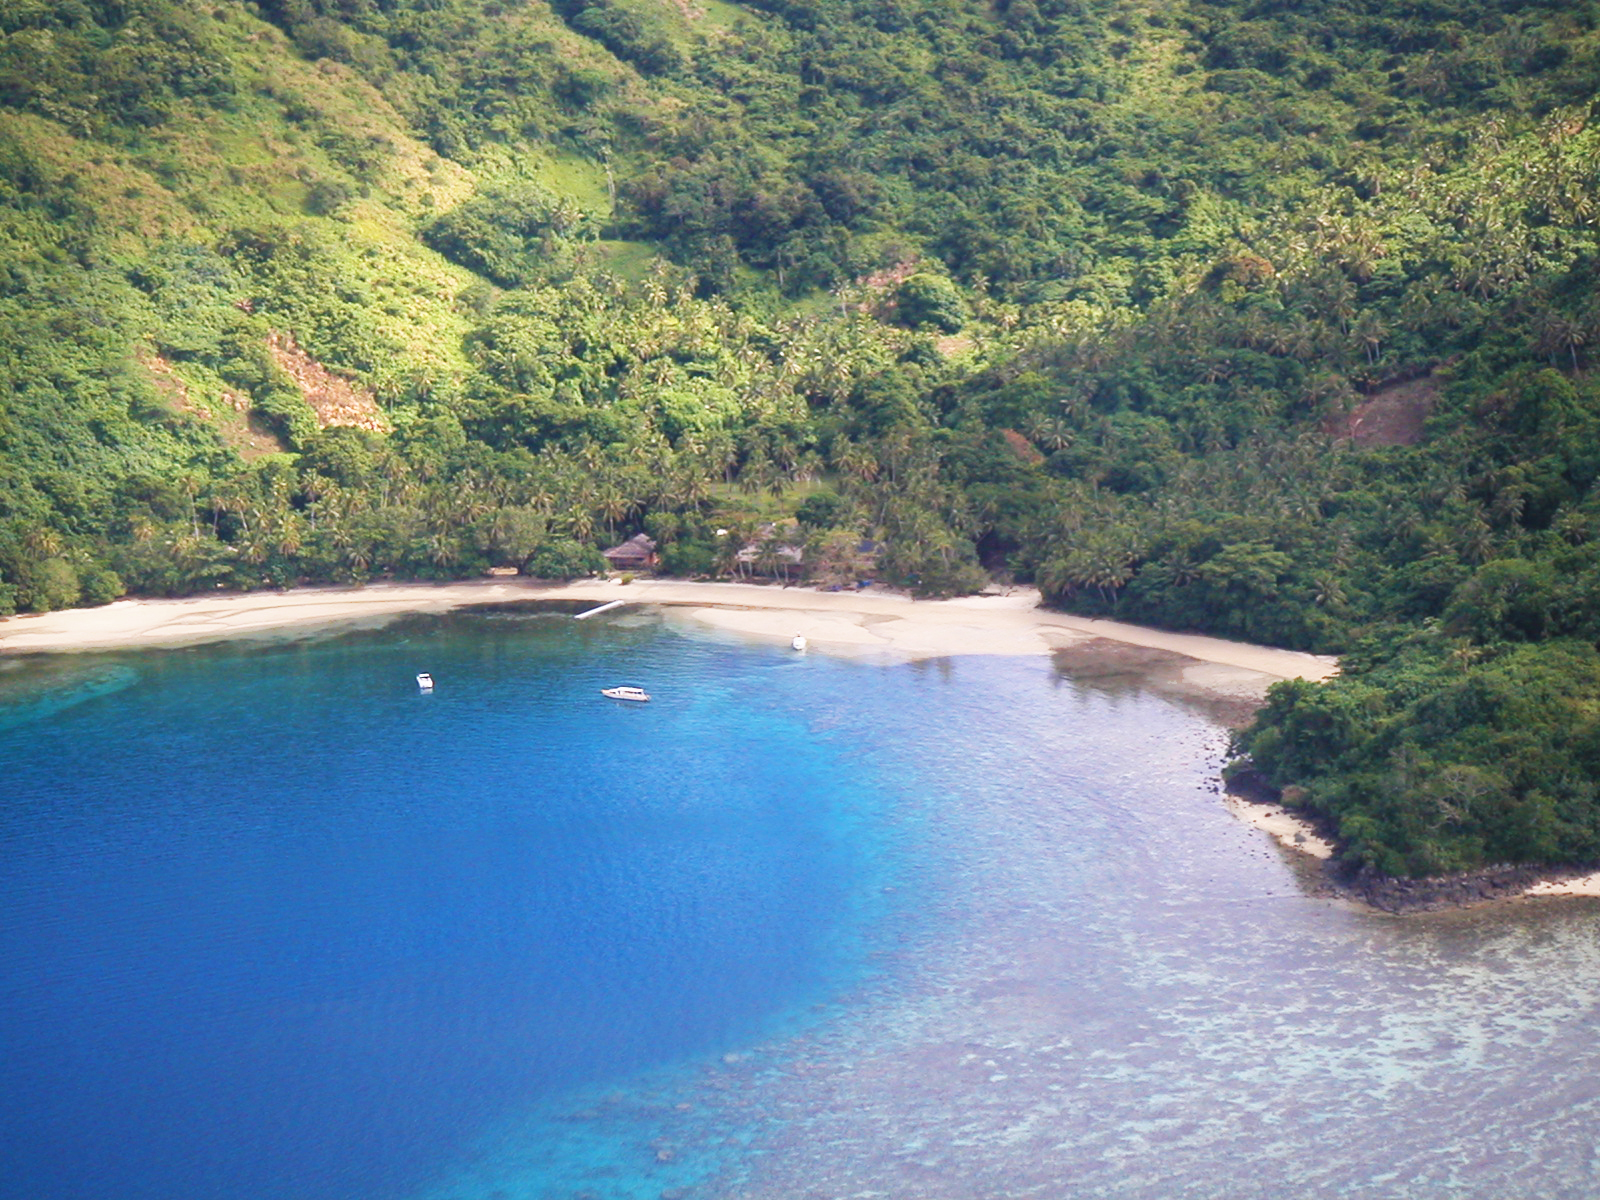 Kulu Bay Resort